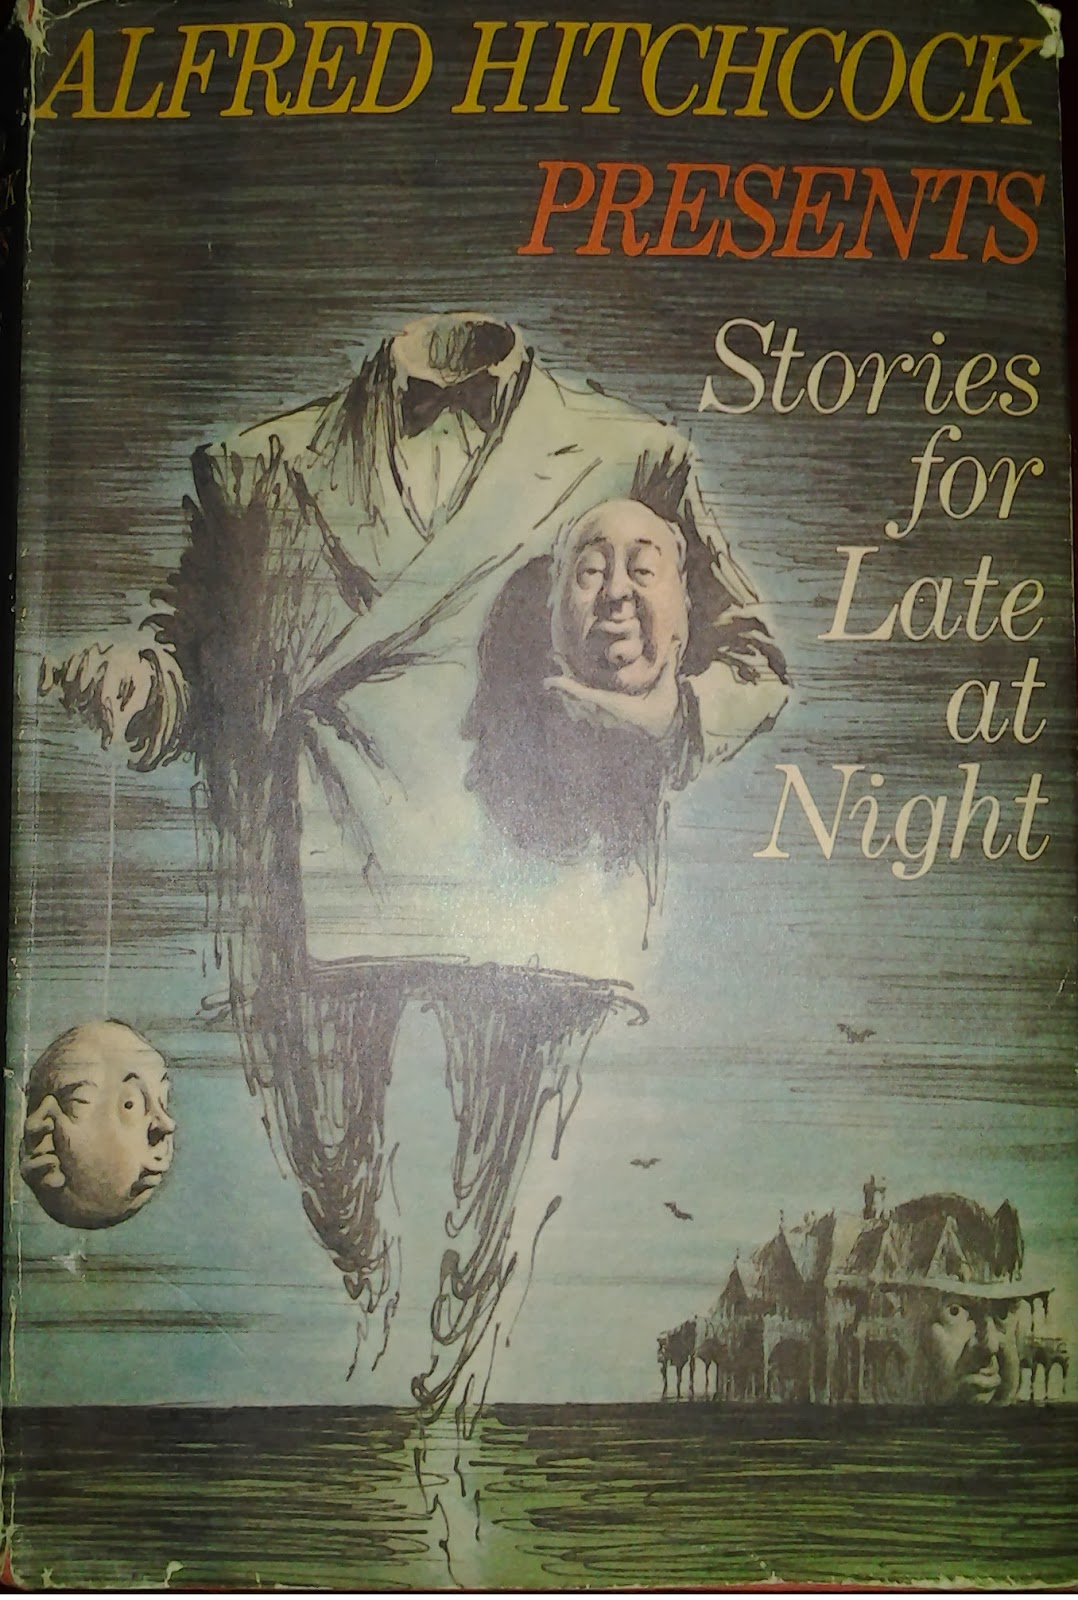 Book cover:  Alfred Hitchcock Presents Stories for Late at Night edited by Alfred Hitchcock and Robert Arthur